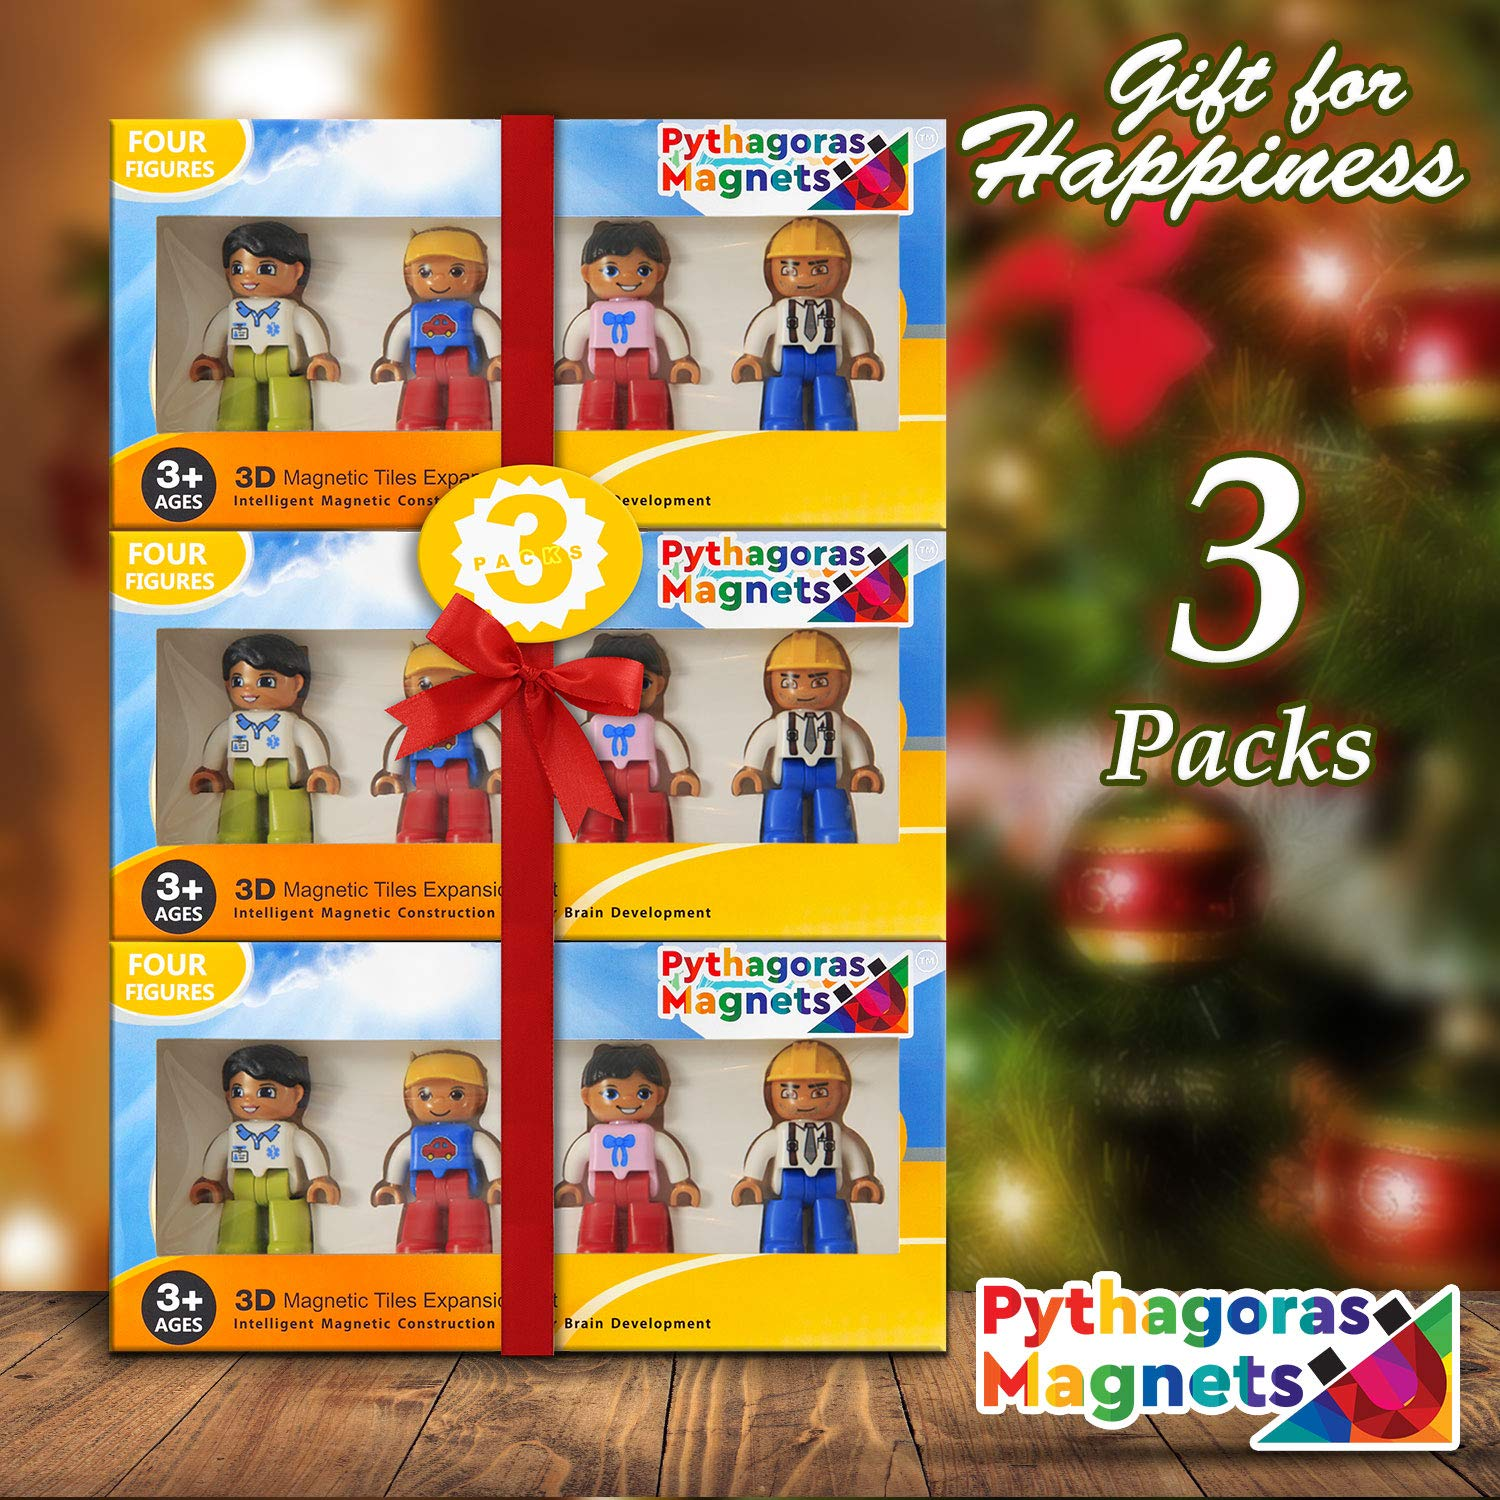 Magnetic Figures Set of 4 -Toddlers Action Toy People, Magnetic Tiles Expansion Pack for Boys and Girls - Banker Father Educational STEM Toys Add on Sets for Magnetic Blocks (3 Pack Banker Set) by Pythagoras Magnets (Image #1)